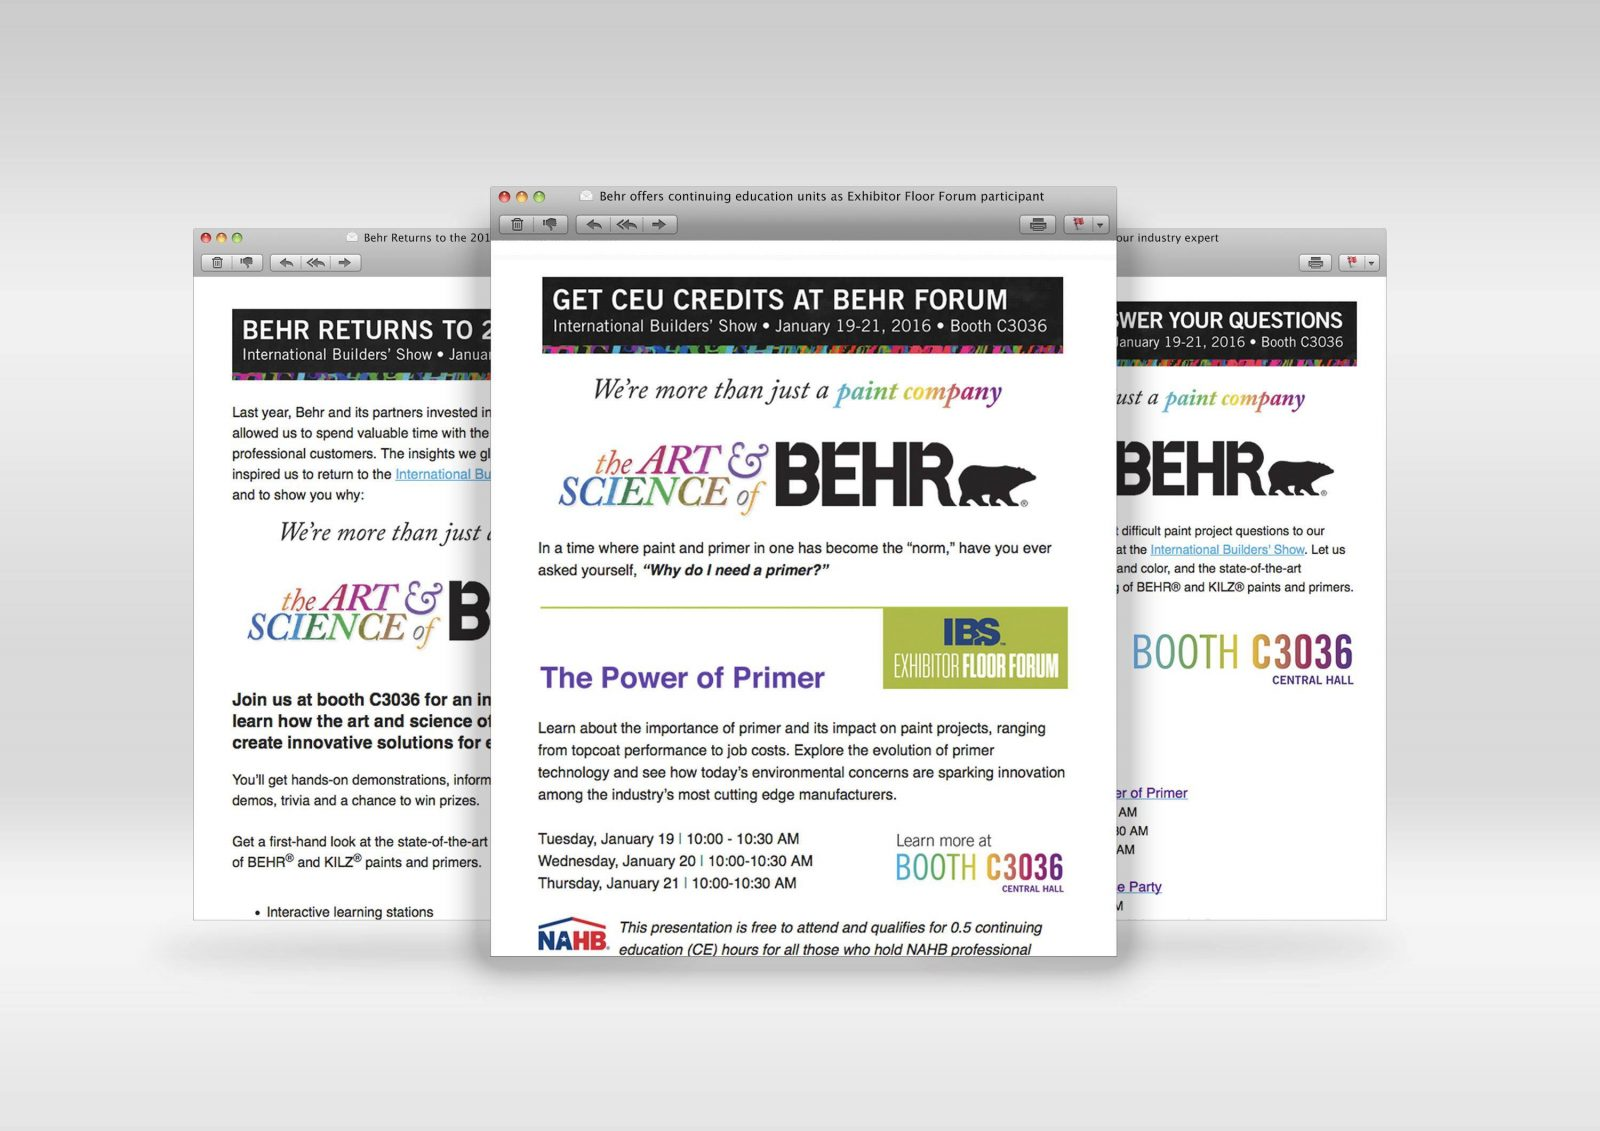 Email campaign, layout and design